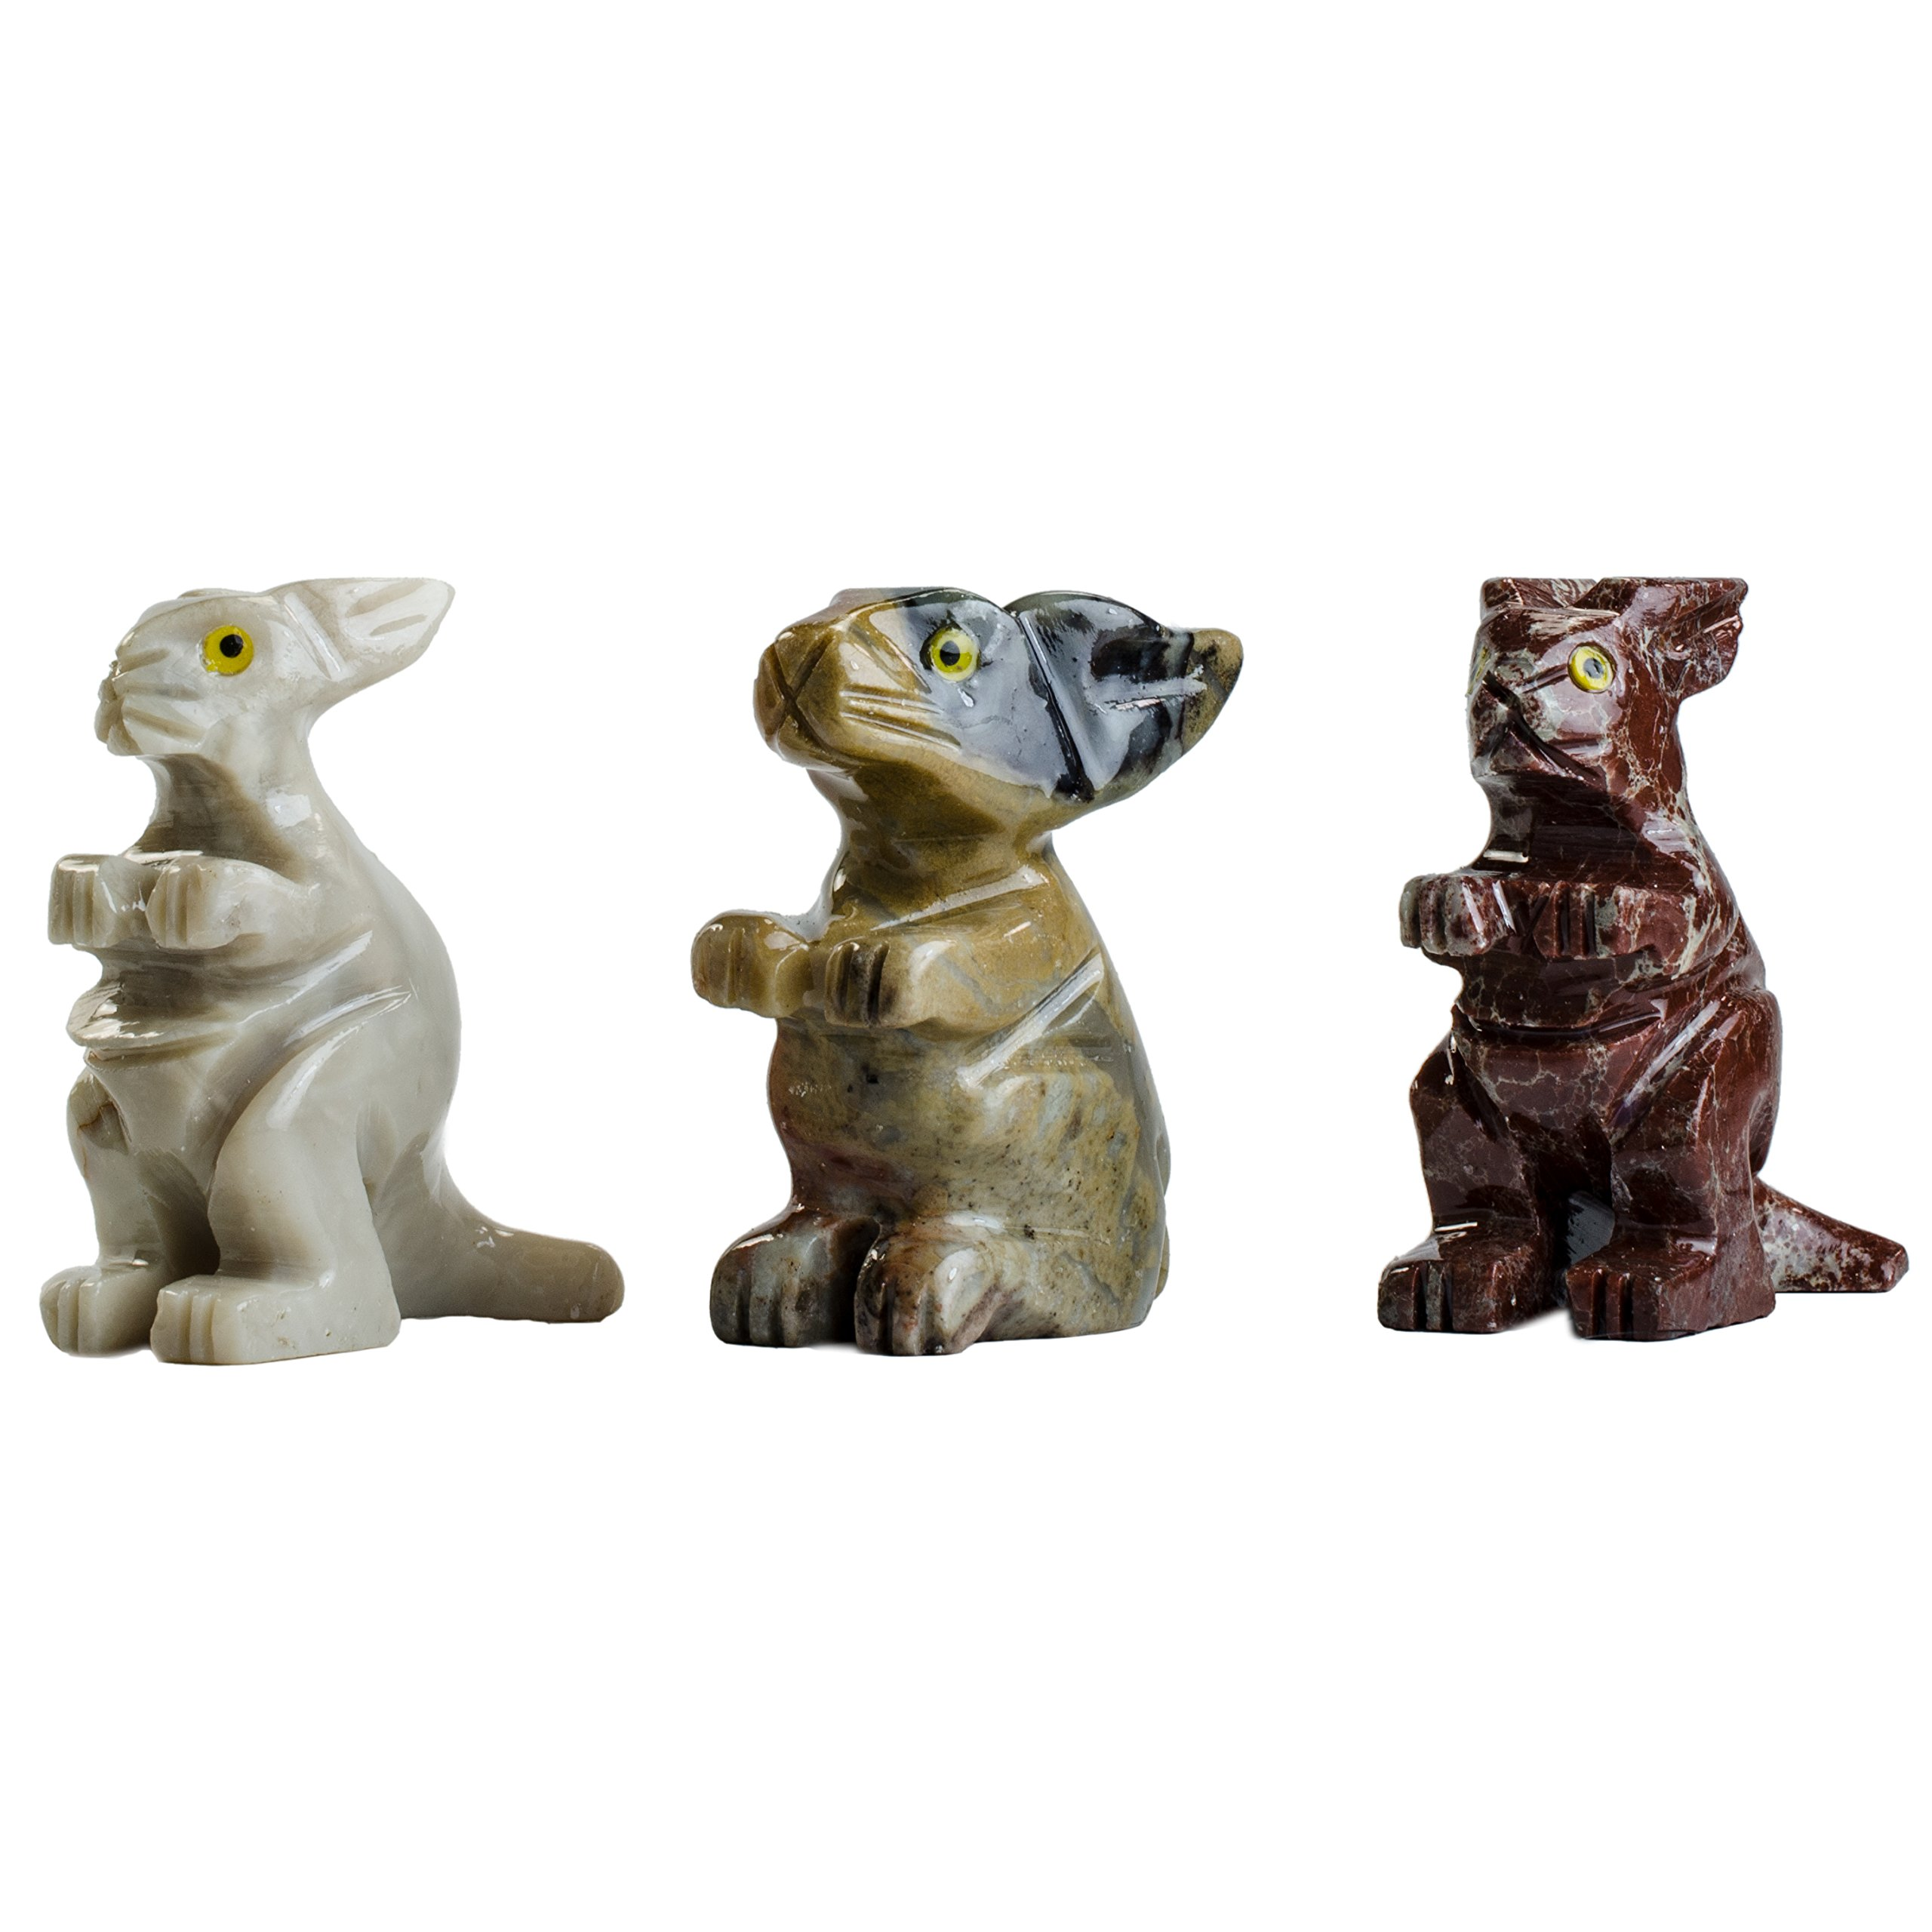 Digging Dolls : 30 pcs Artisan Bunny Collectable Animal Figurine - Party Favors, Stocking Stuffers, Gifts, Collecting and More!